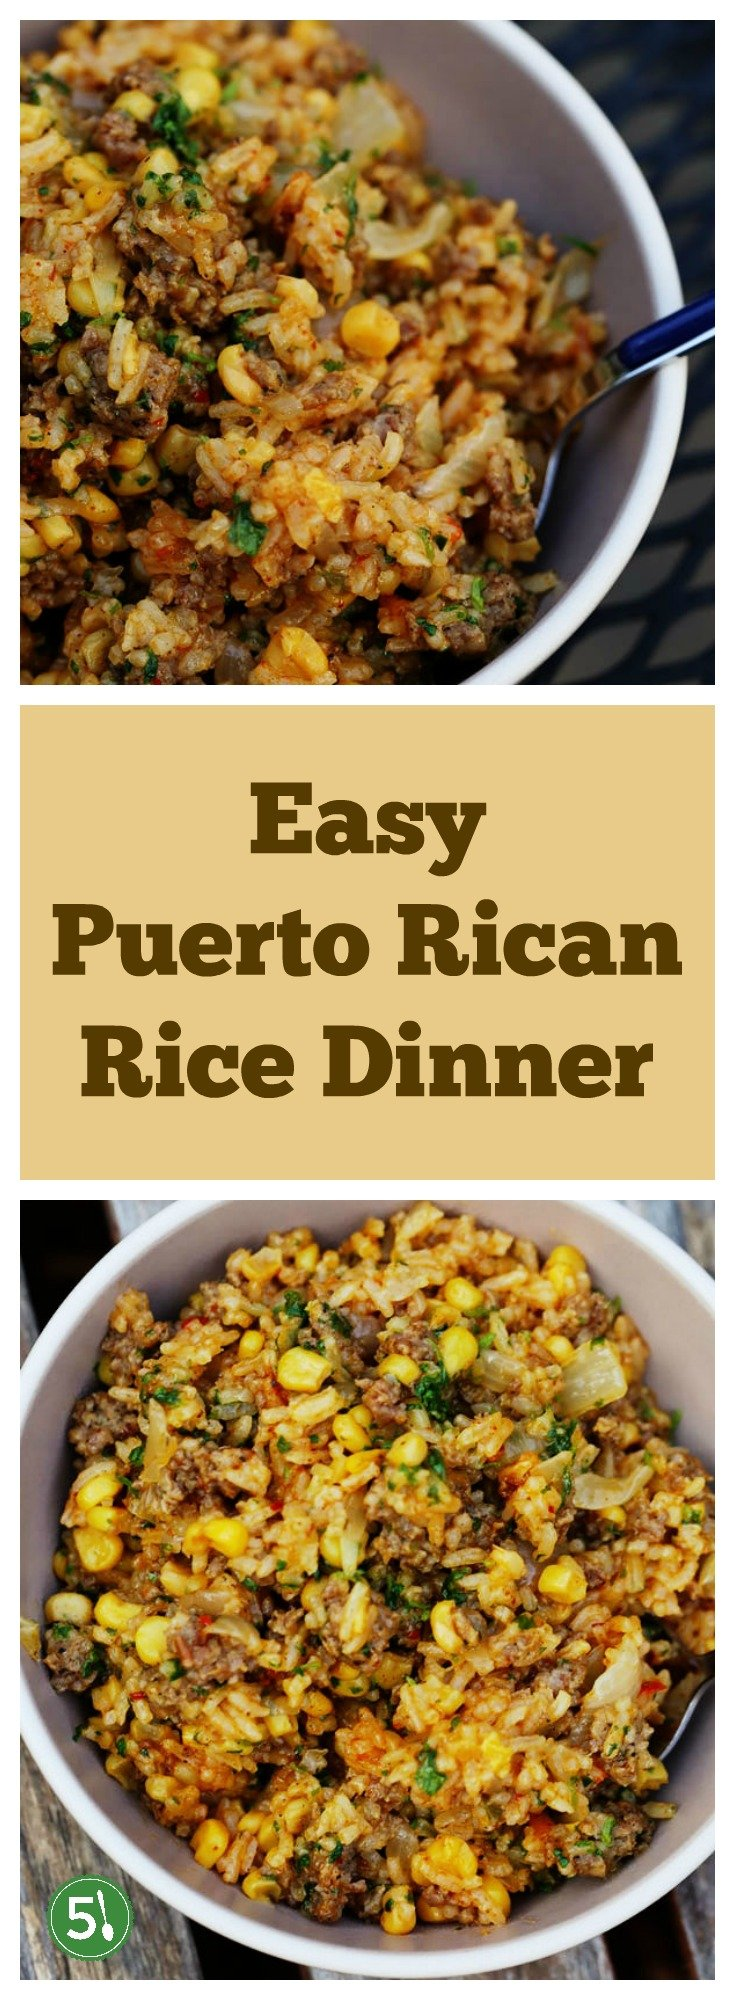 Easy Puerto Rican rice dinner recipe that will wow the family.